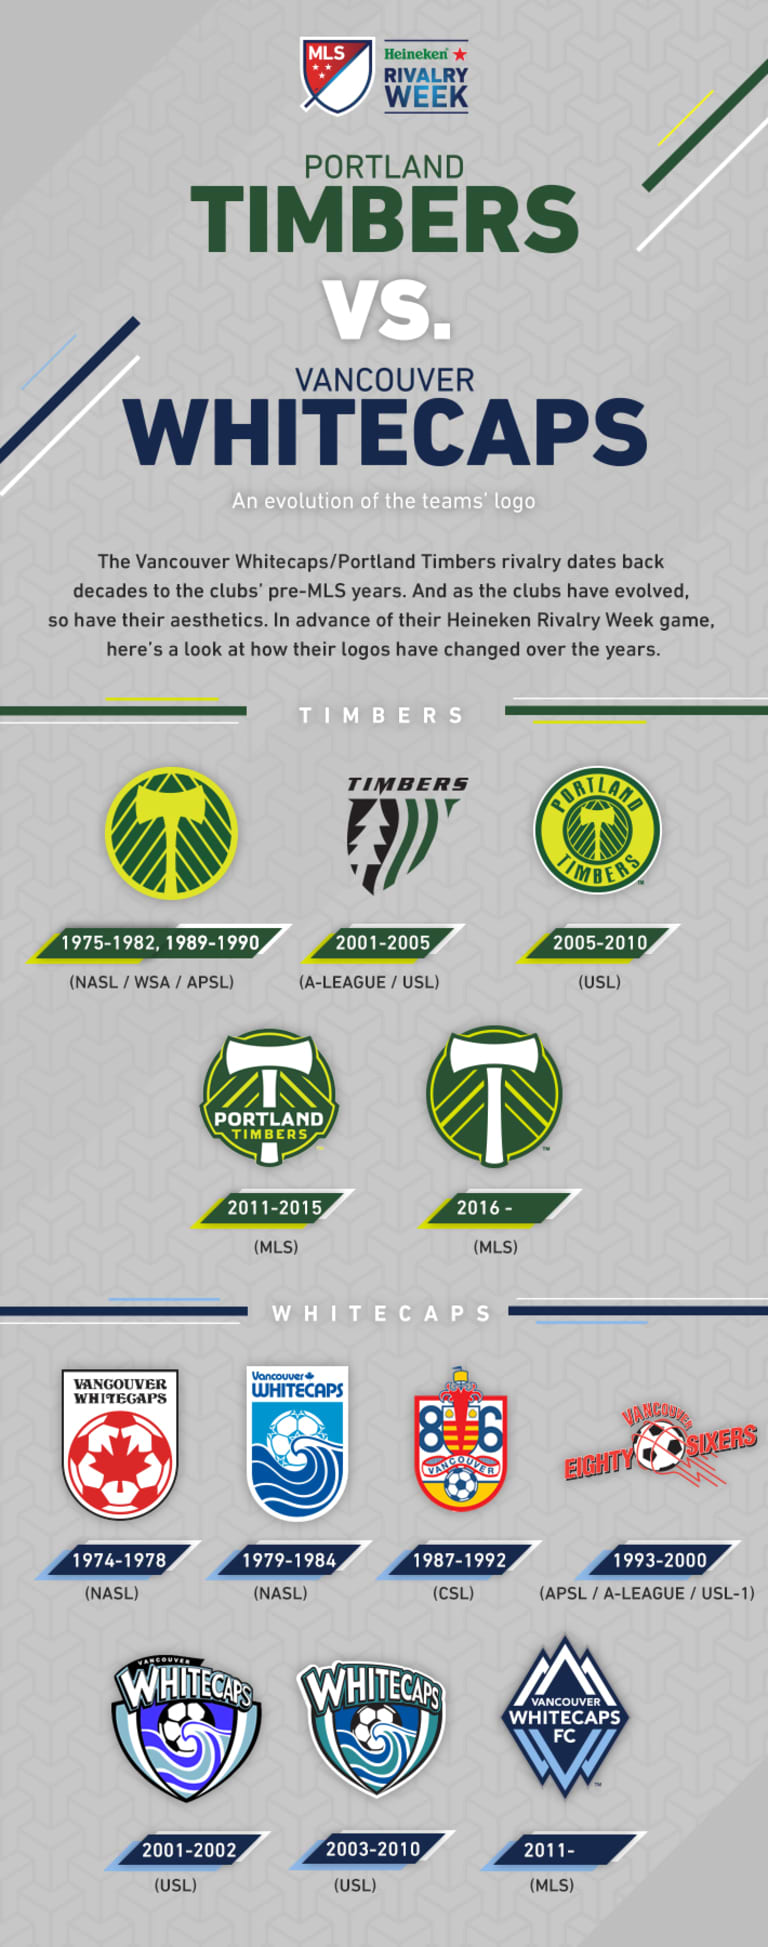 A visual history of the Timbers' and Whitecaps' crests - https://league-mp7static.mlsdigital.net/images/Whitecaps_vs_Timbers_Logos_v2.jpeg?null